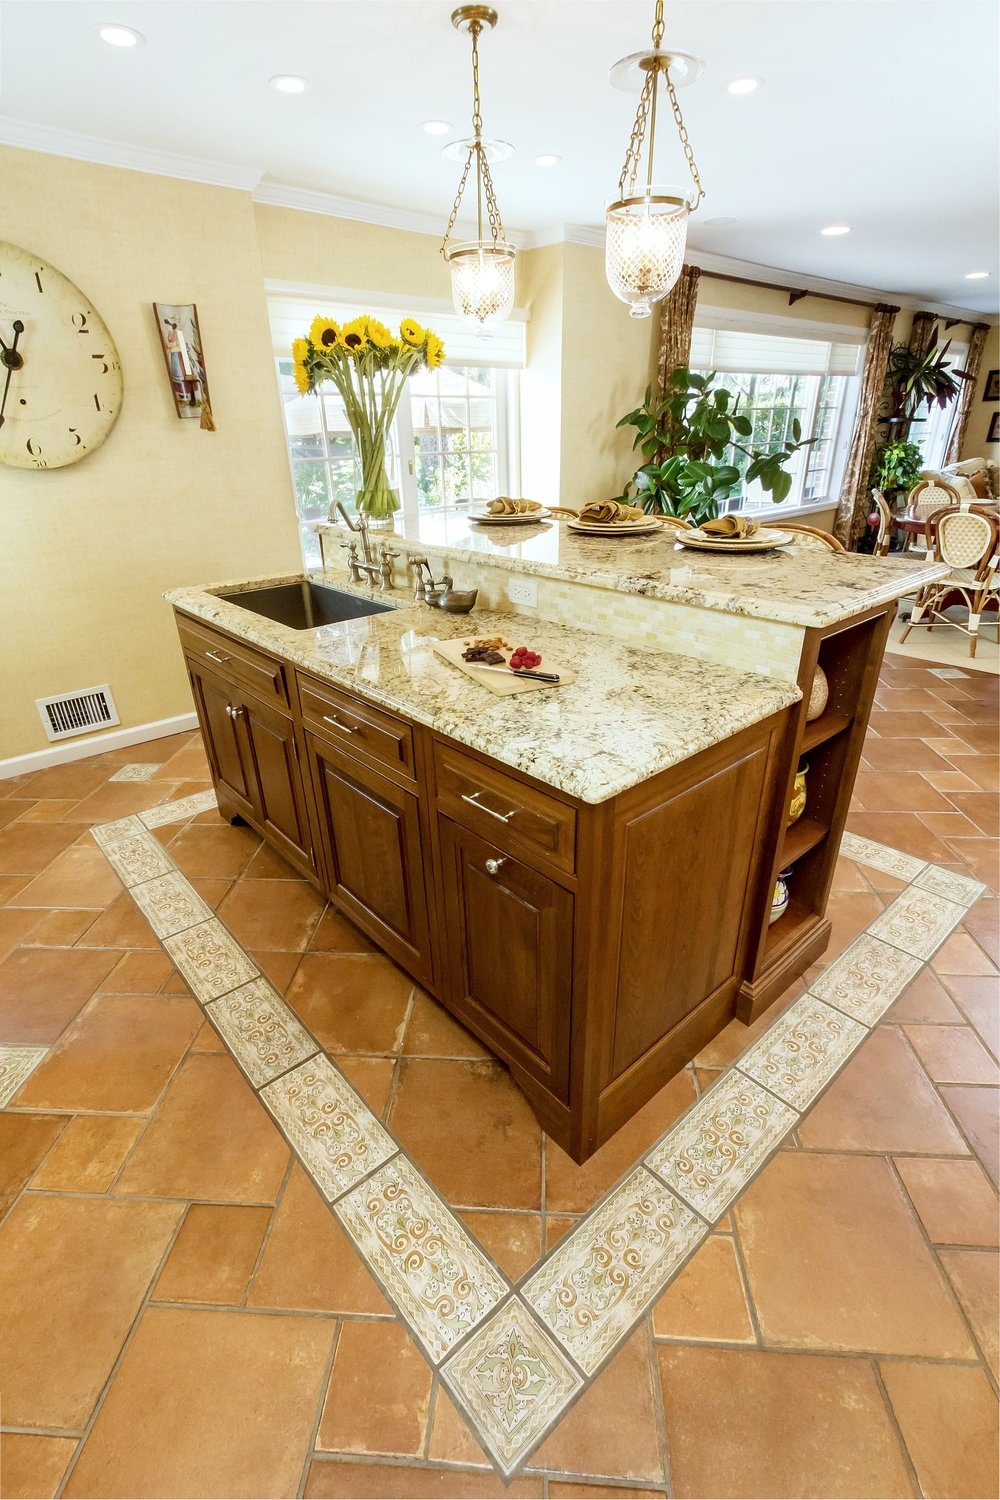 Traditional style kitchen island with two levels